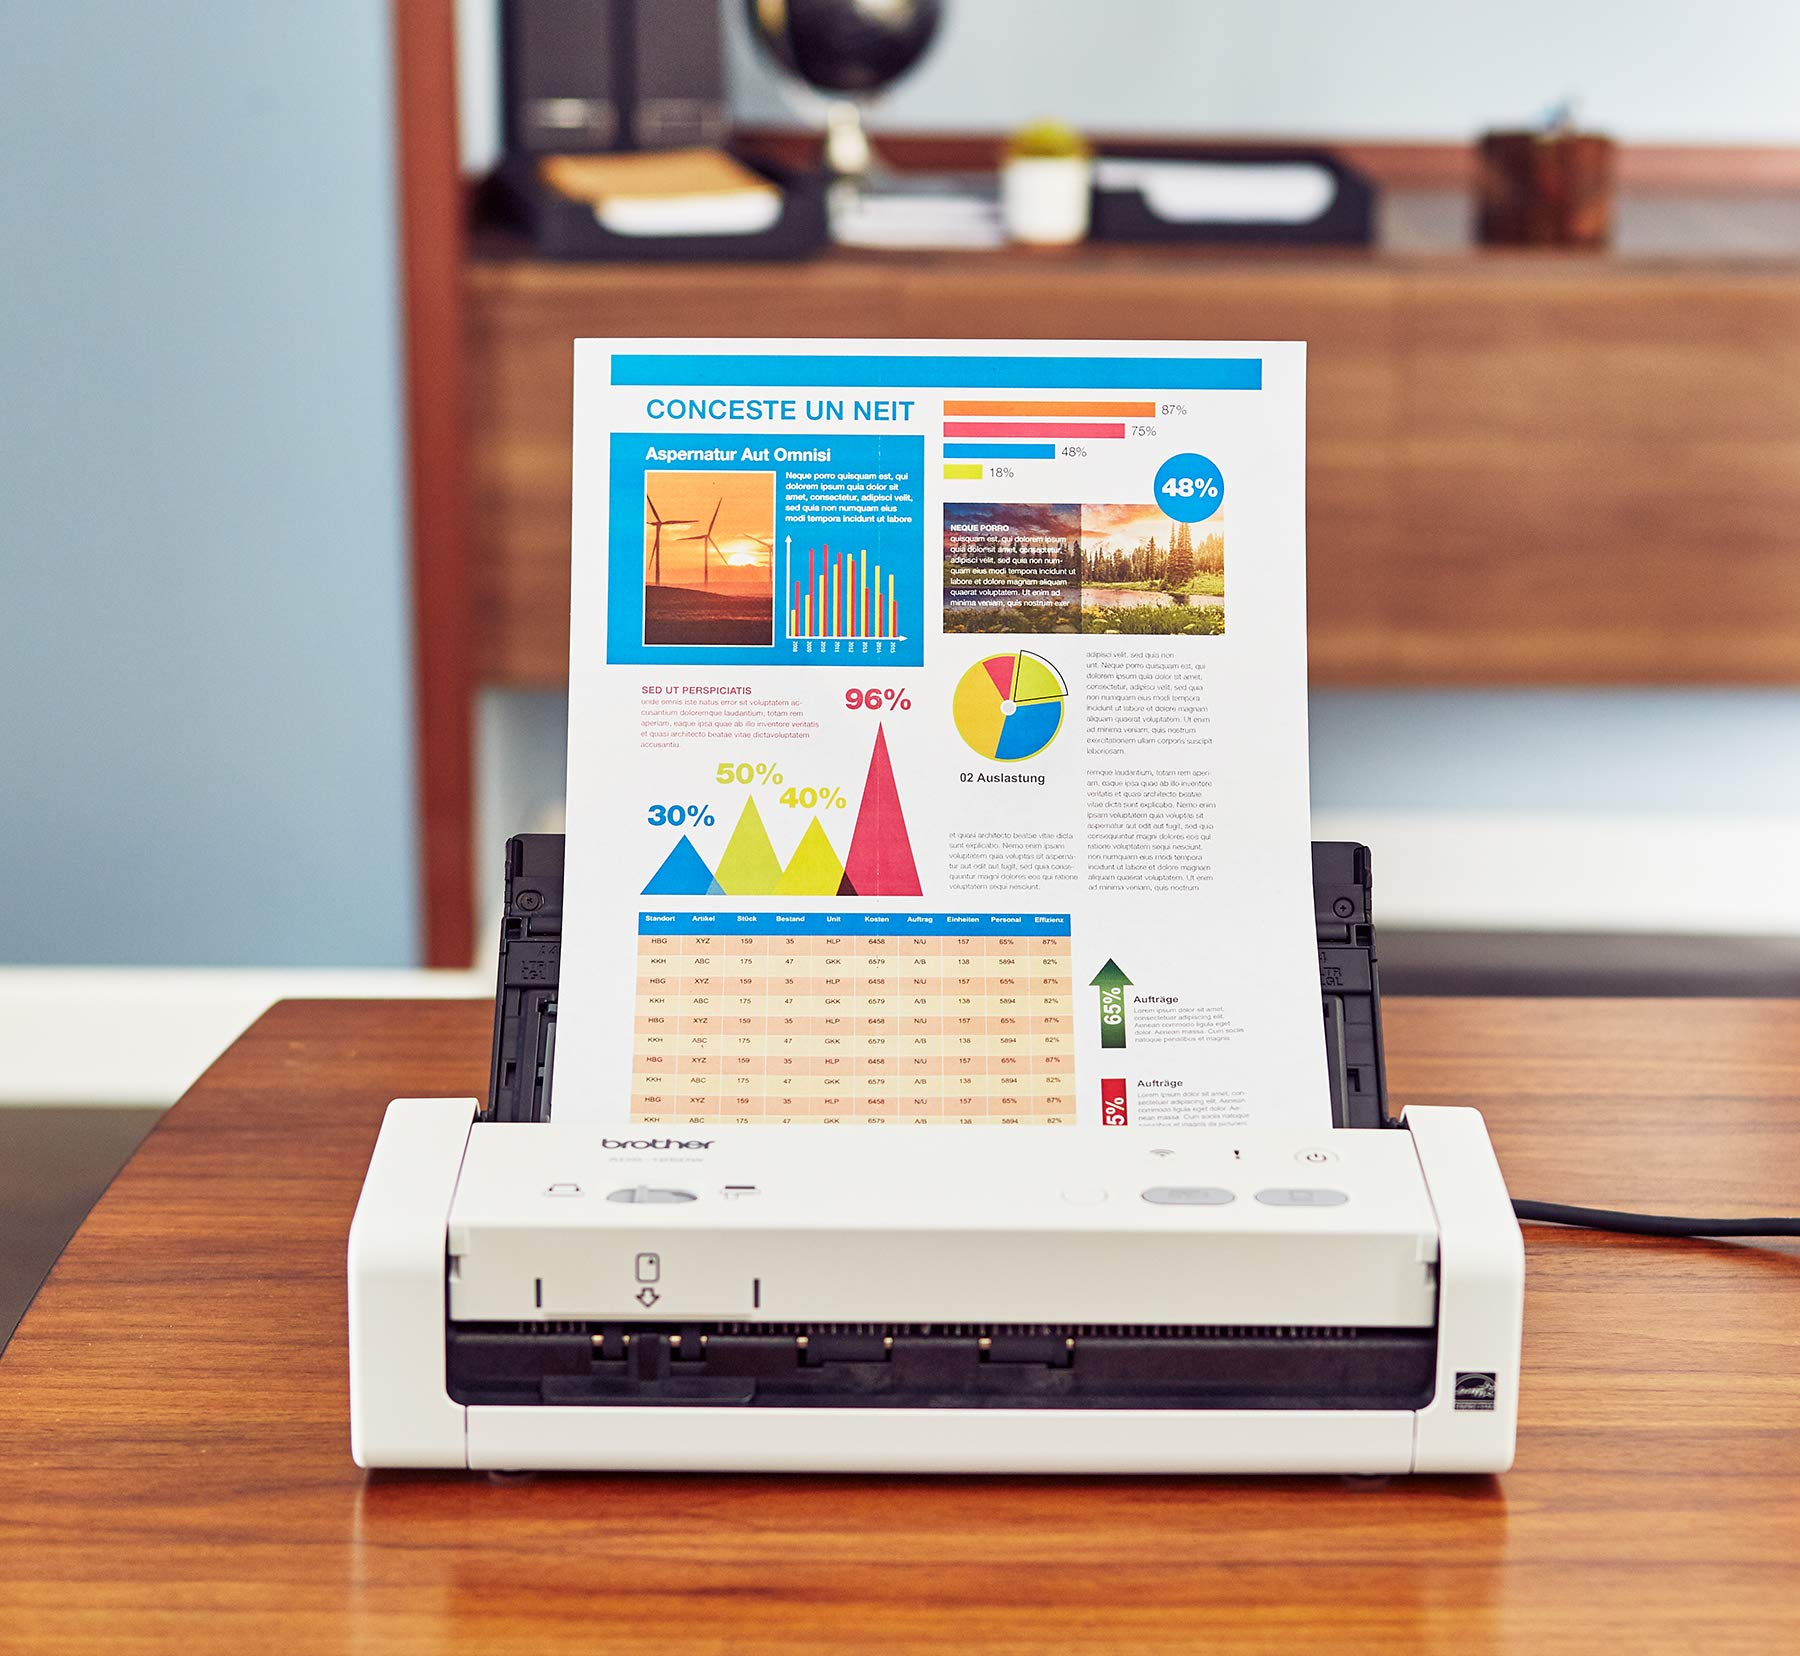 Brother Easy-to-Use Compact Desktop Scanner, ADS-1200, Fast Scan Speeds, Ideal for Home, Home Office or On-The-Go Professionals by Brother